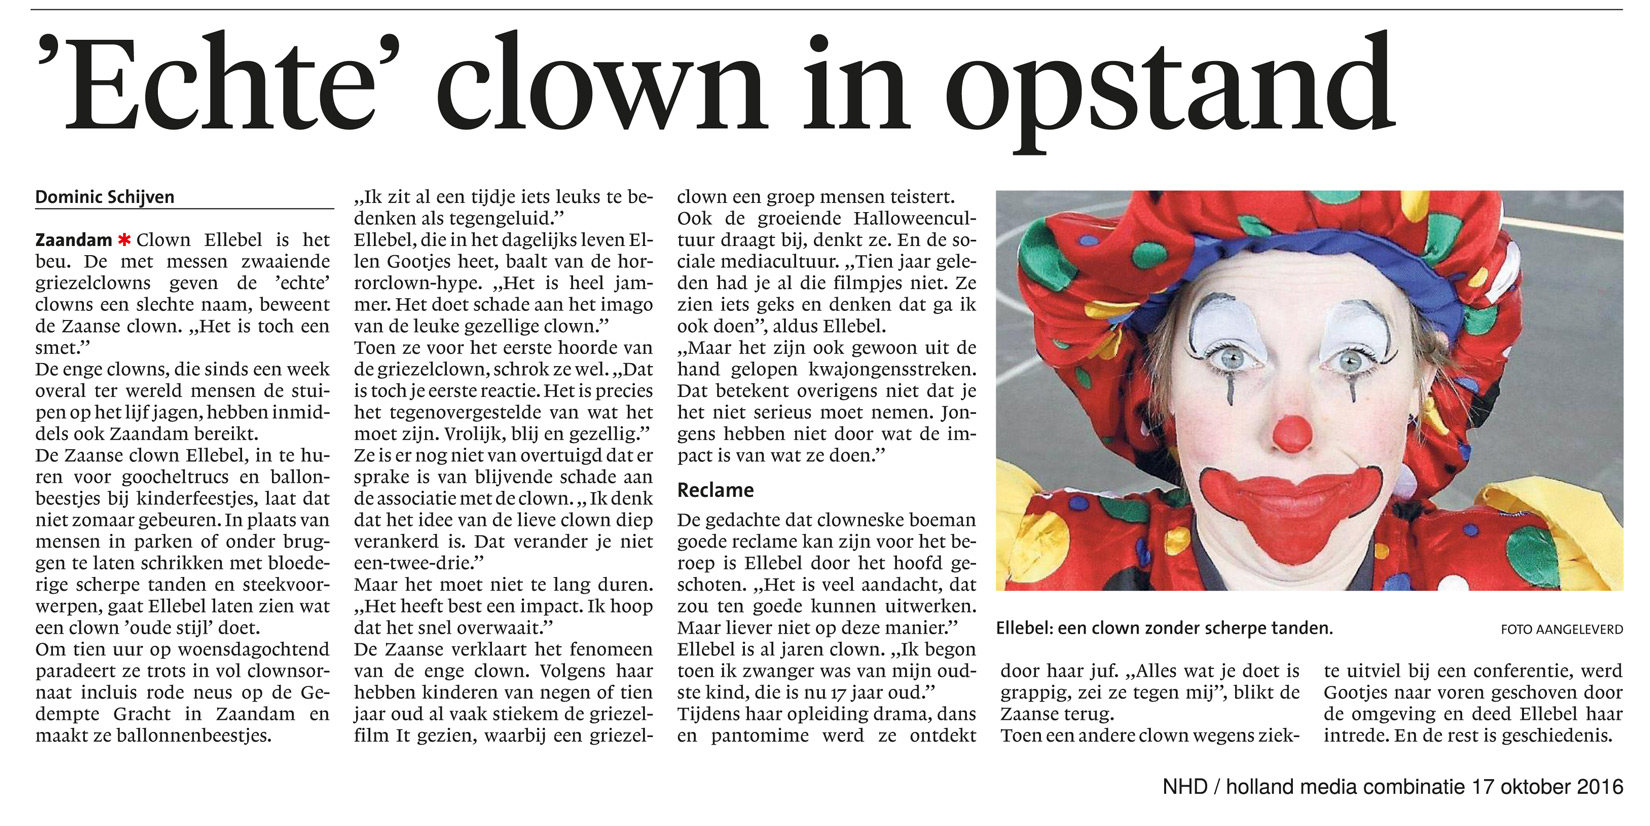 echte clown in opstand